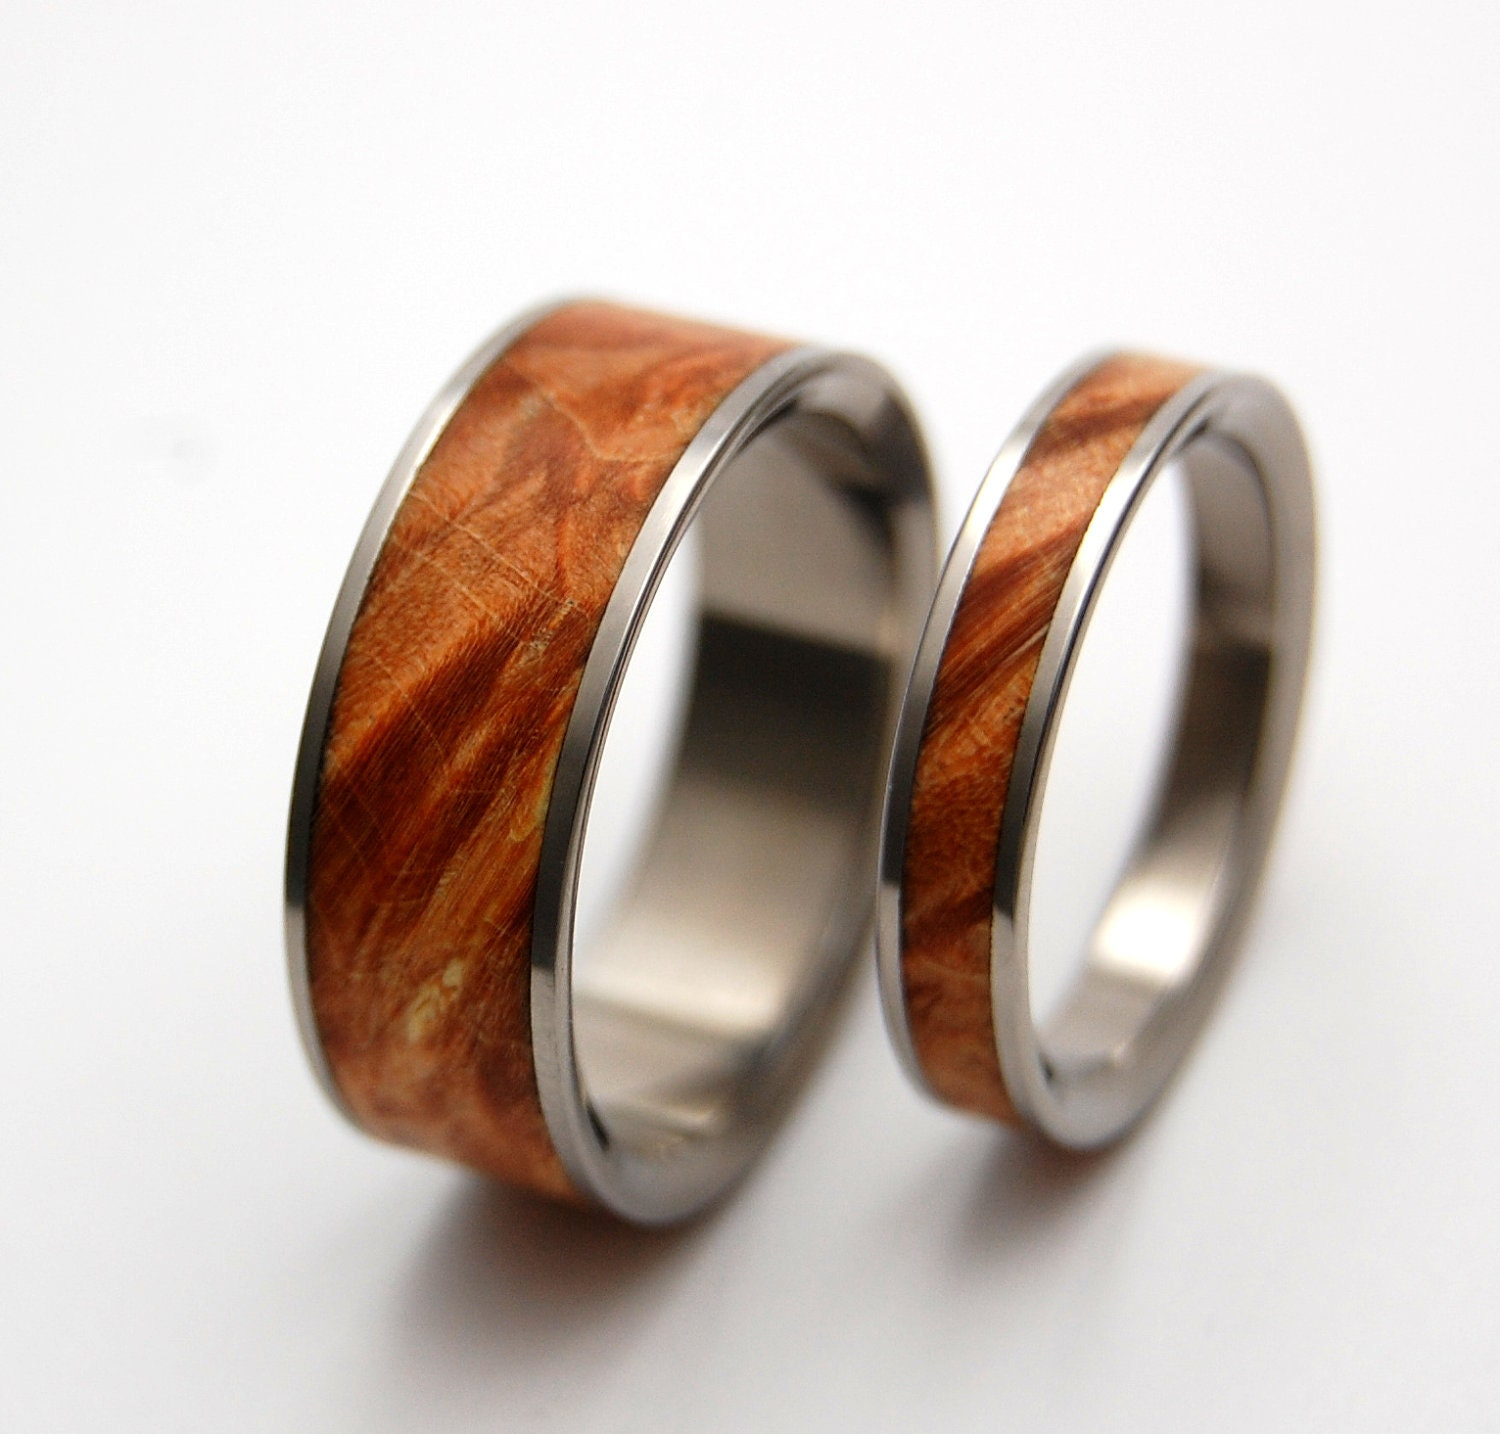 Wedding Rings Titanium Rings Wood Rings Mens Rings